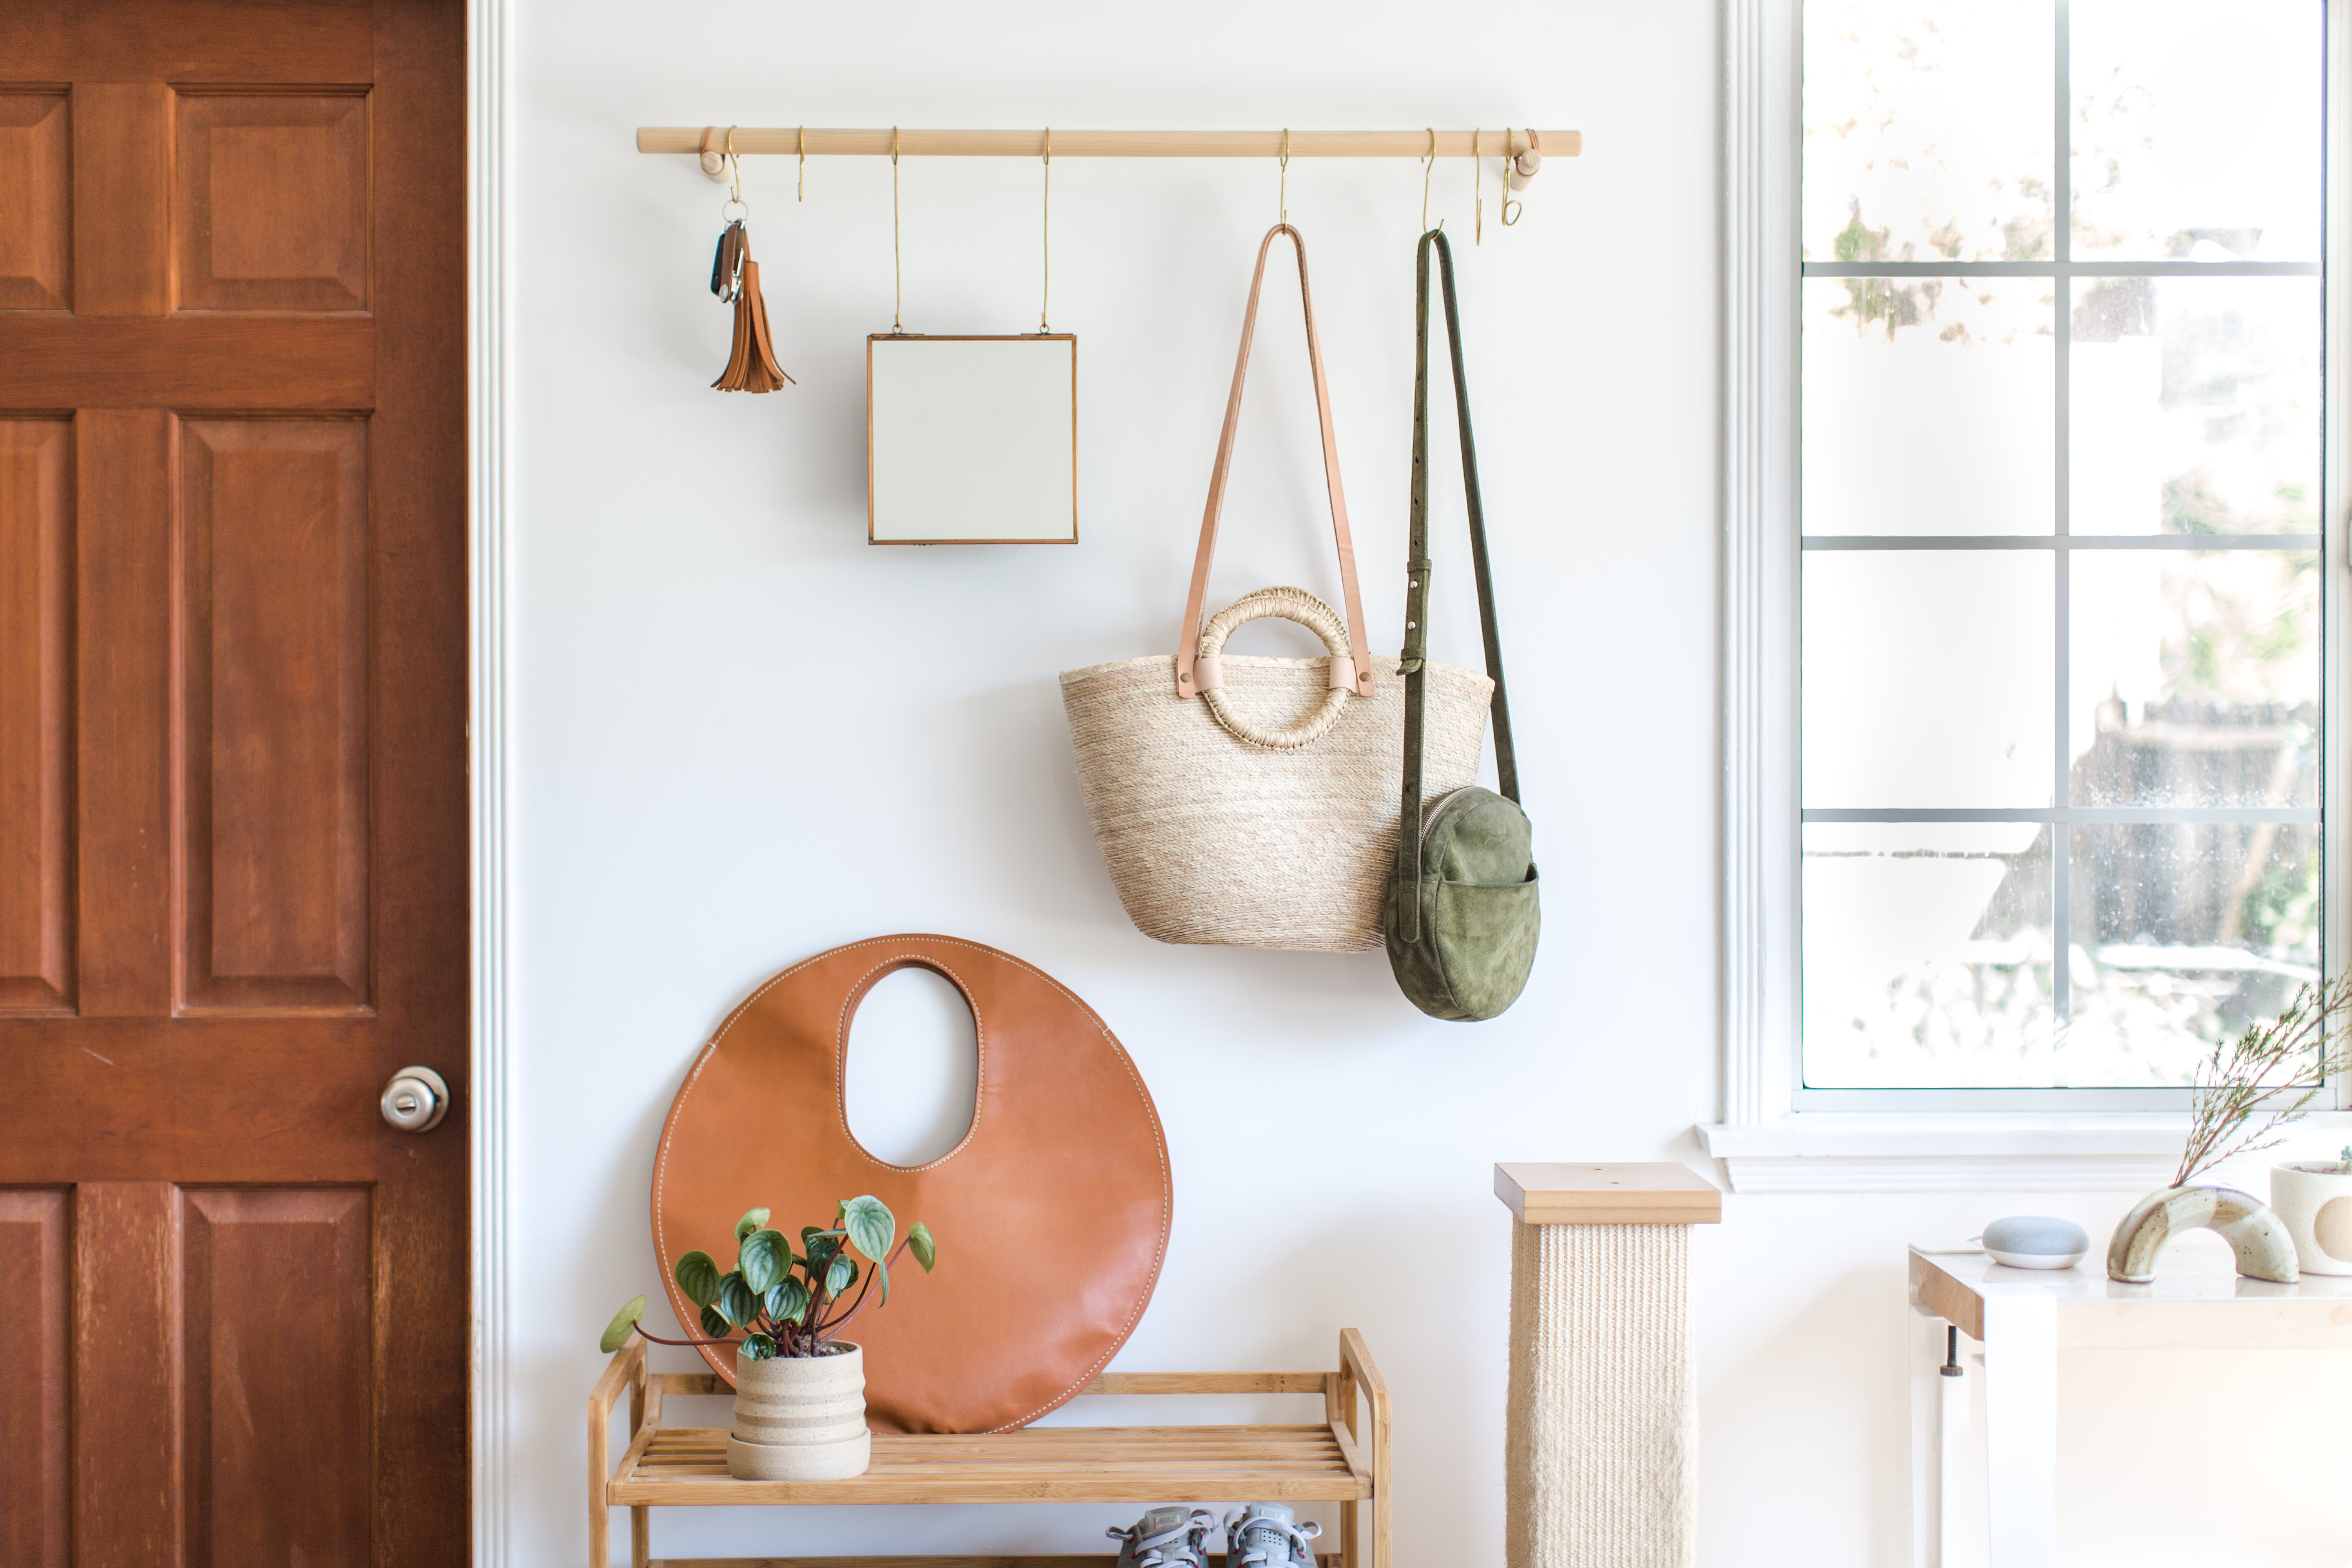 Ikea Akurum Credenza : 11 ways ikea can rescue your cluttered entryway apartment therapy